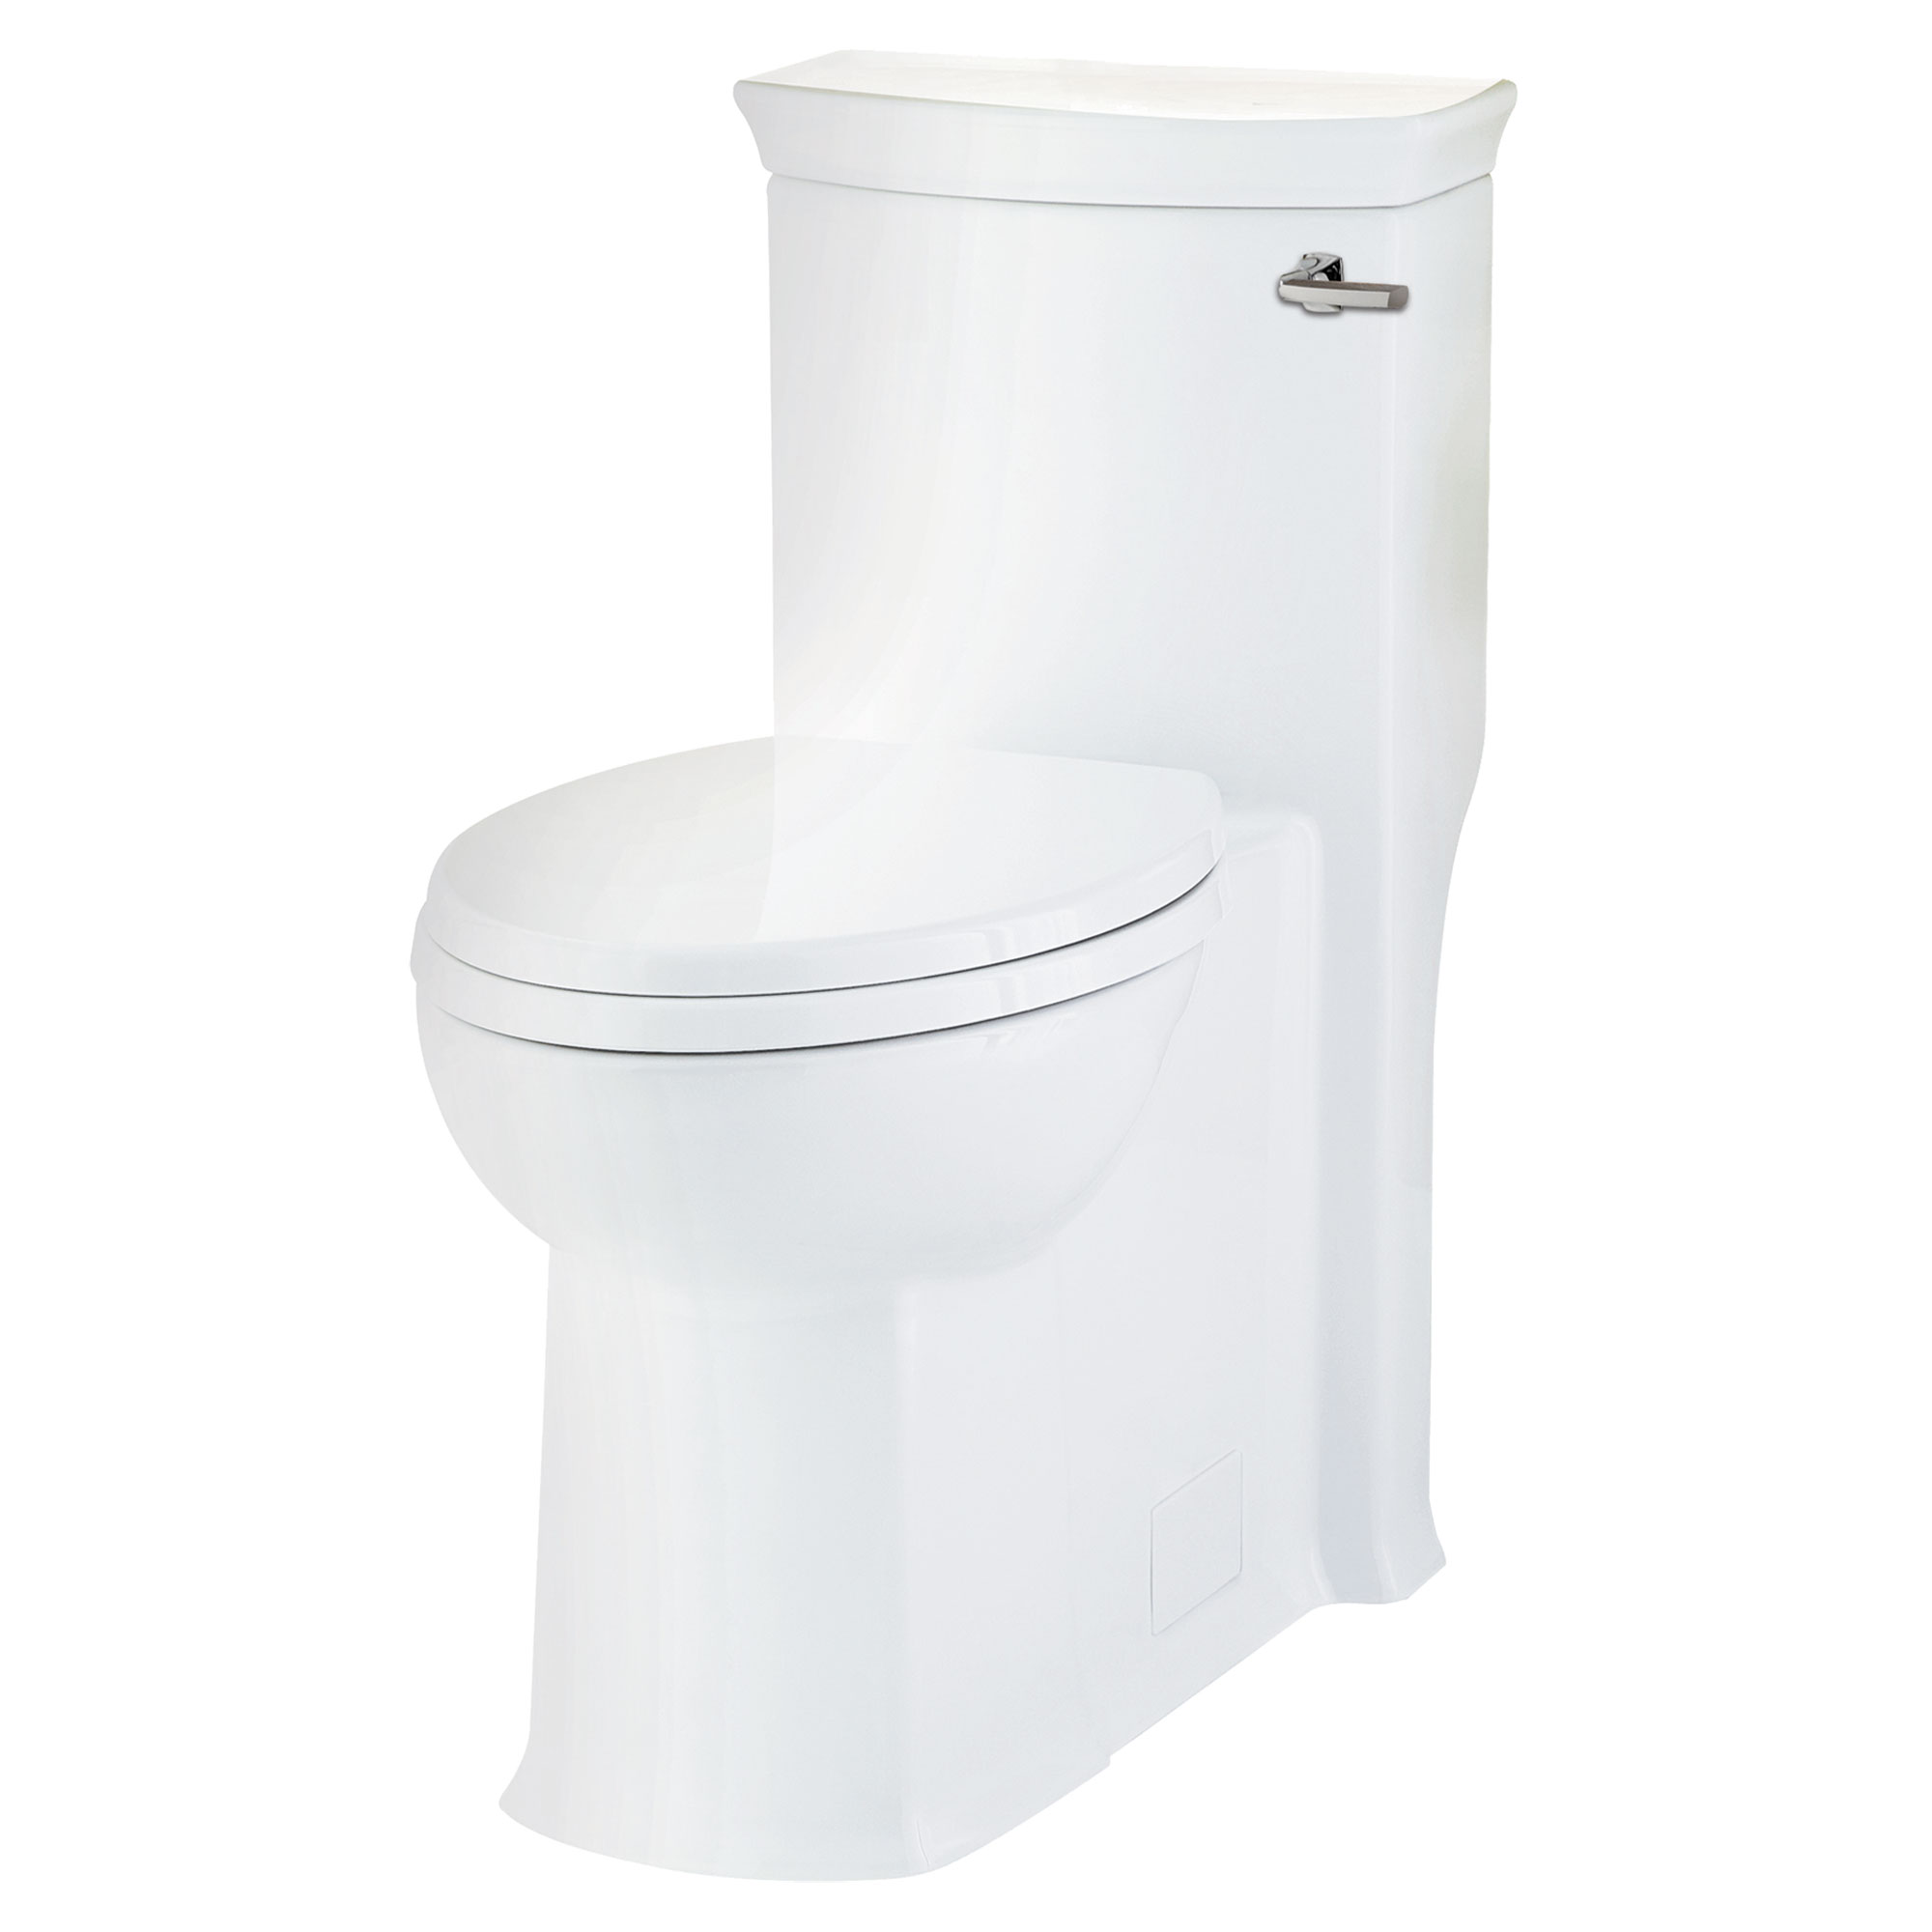 Wyatt Elongated One-Piece Toilet with Right-Hand Trip Lever - Projects Model